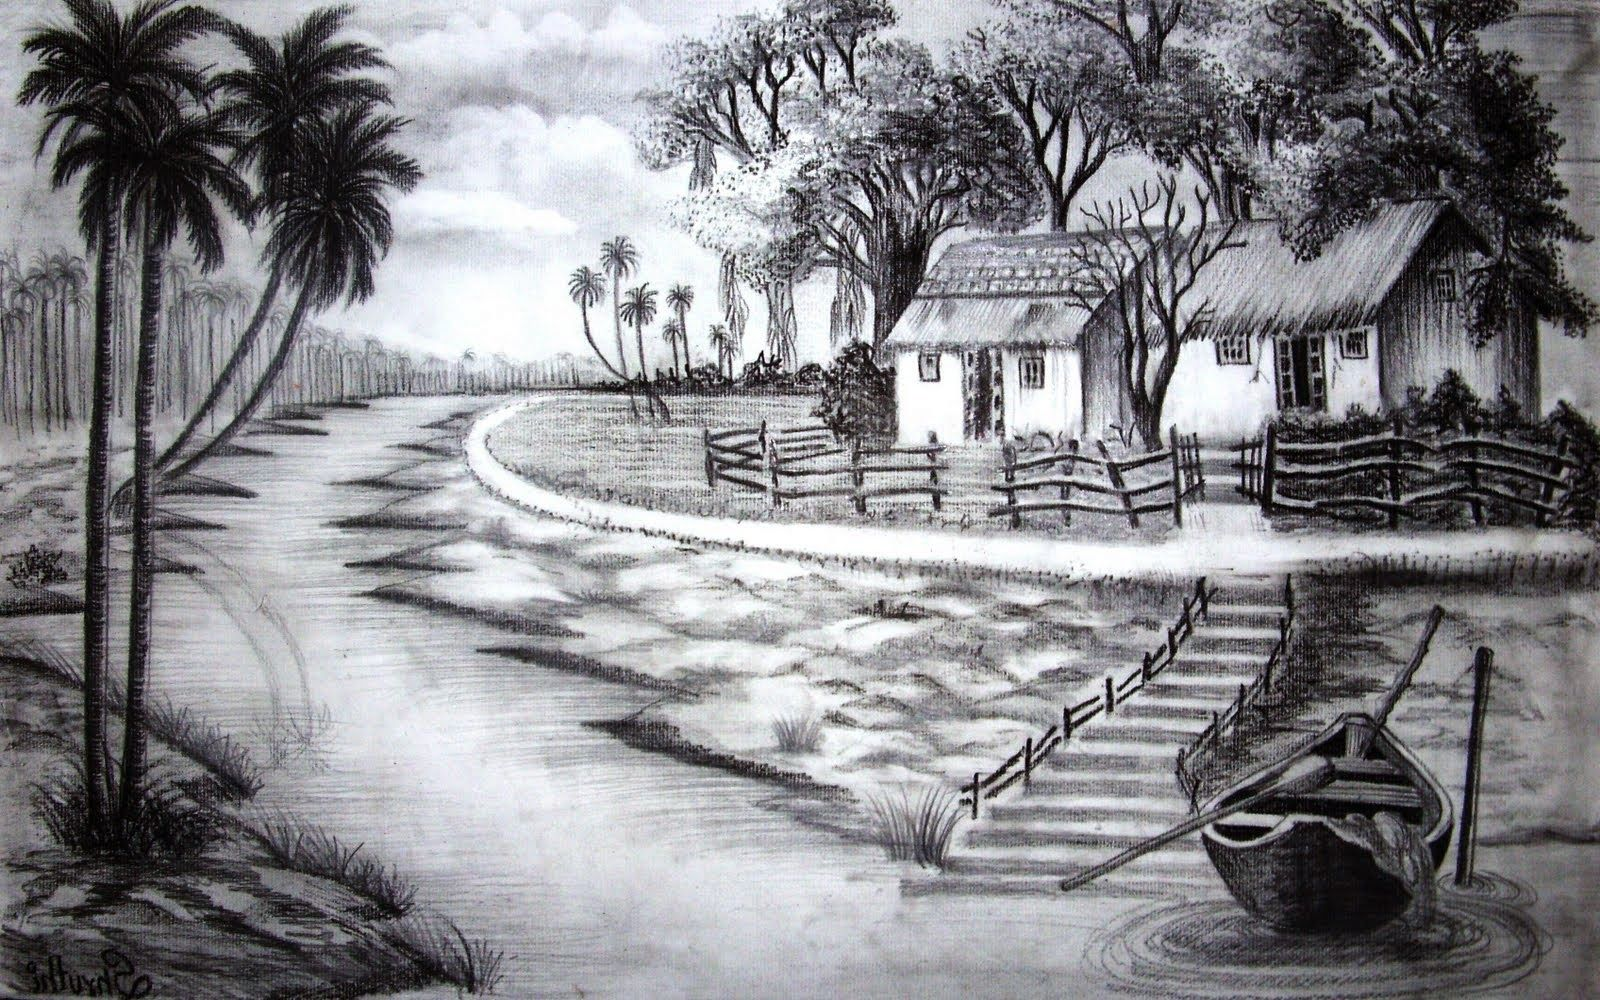 You Can Draw Painting And Pencil Drawing Of Nature In 2020 With Images Pencil Drawings Of Nature Landscape Pencil Drawings Nature Drawing